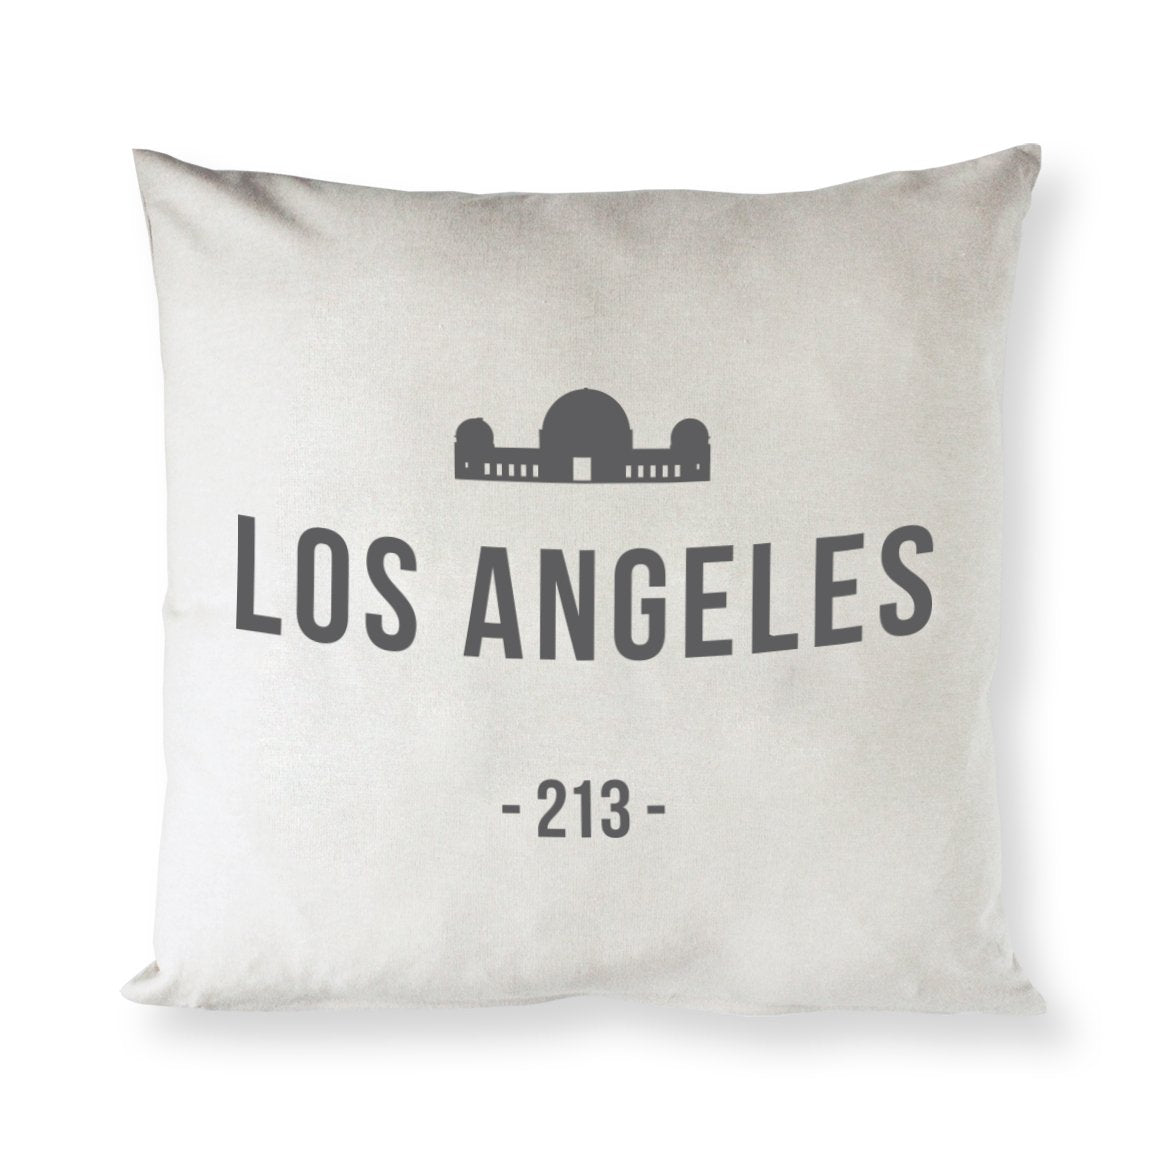 Los Angeles Pillow Cover